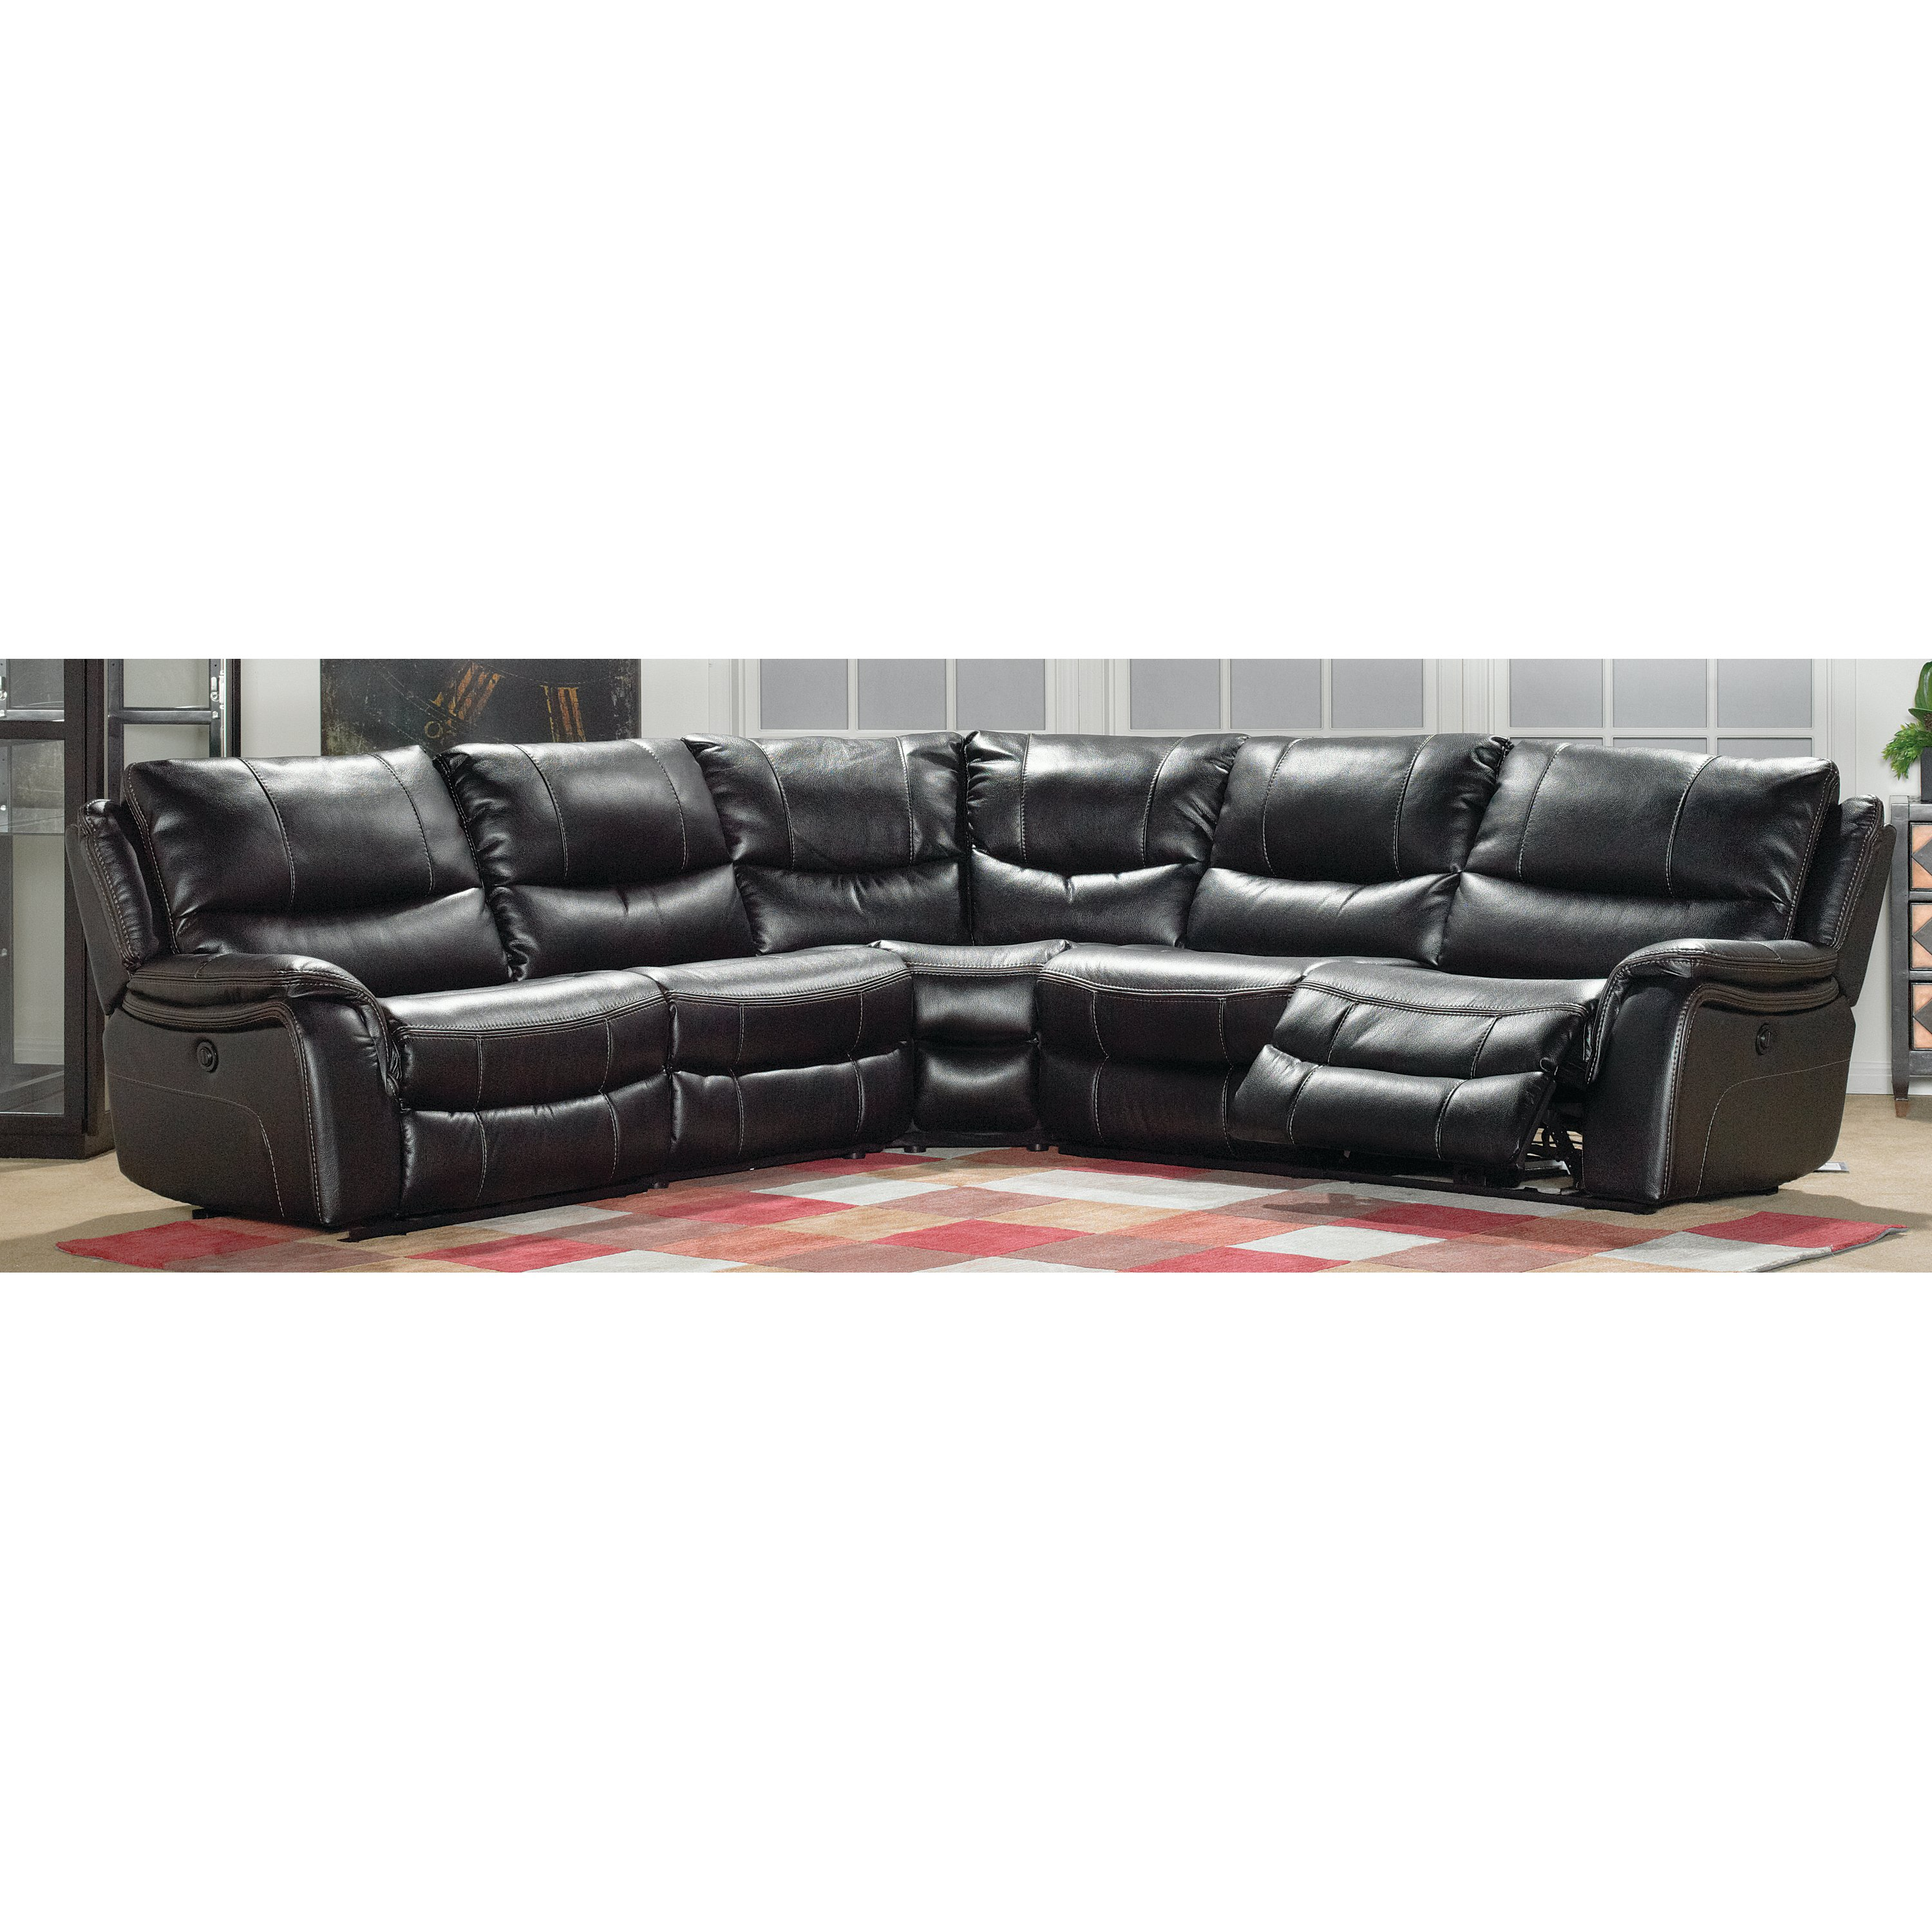 leather sectional living room furniture. Black 5 Piece Reclining Sectional - Wayne Leather Living Room Furniture